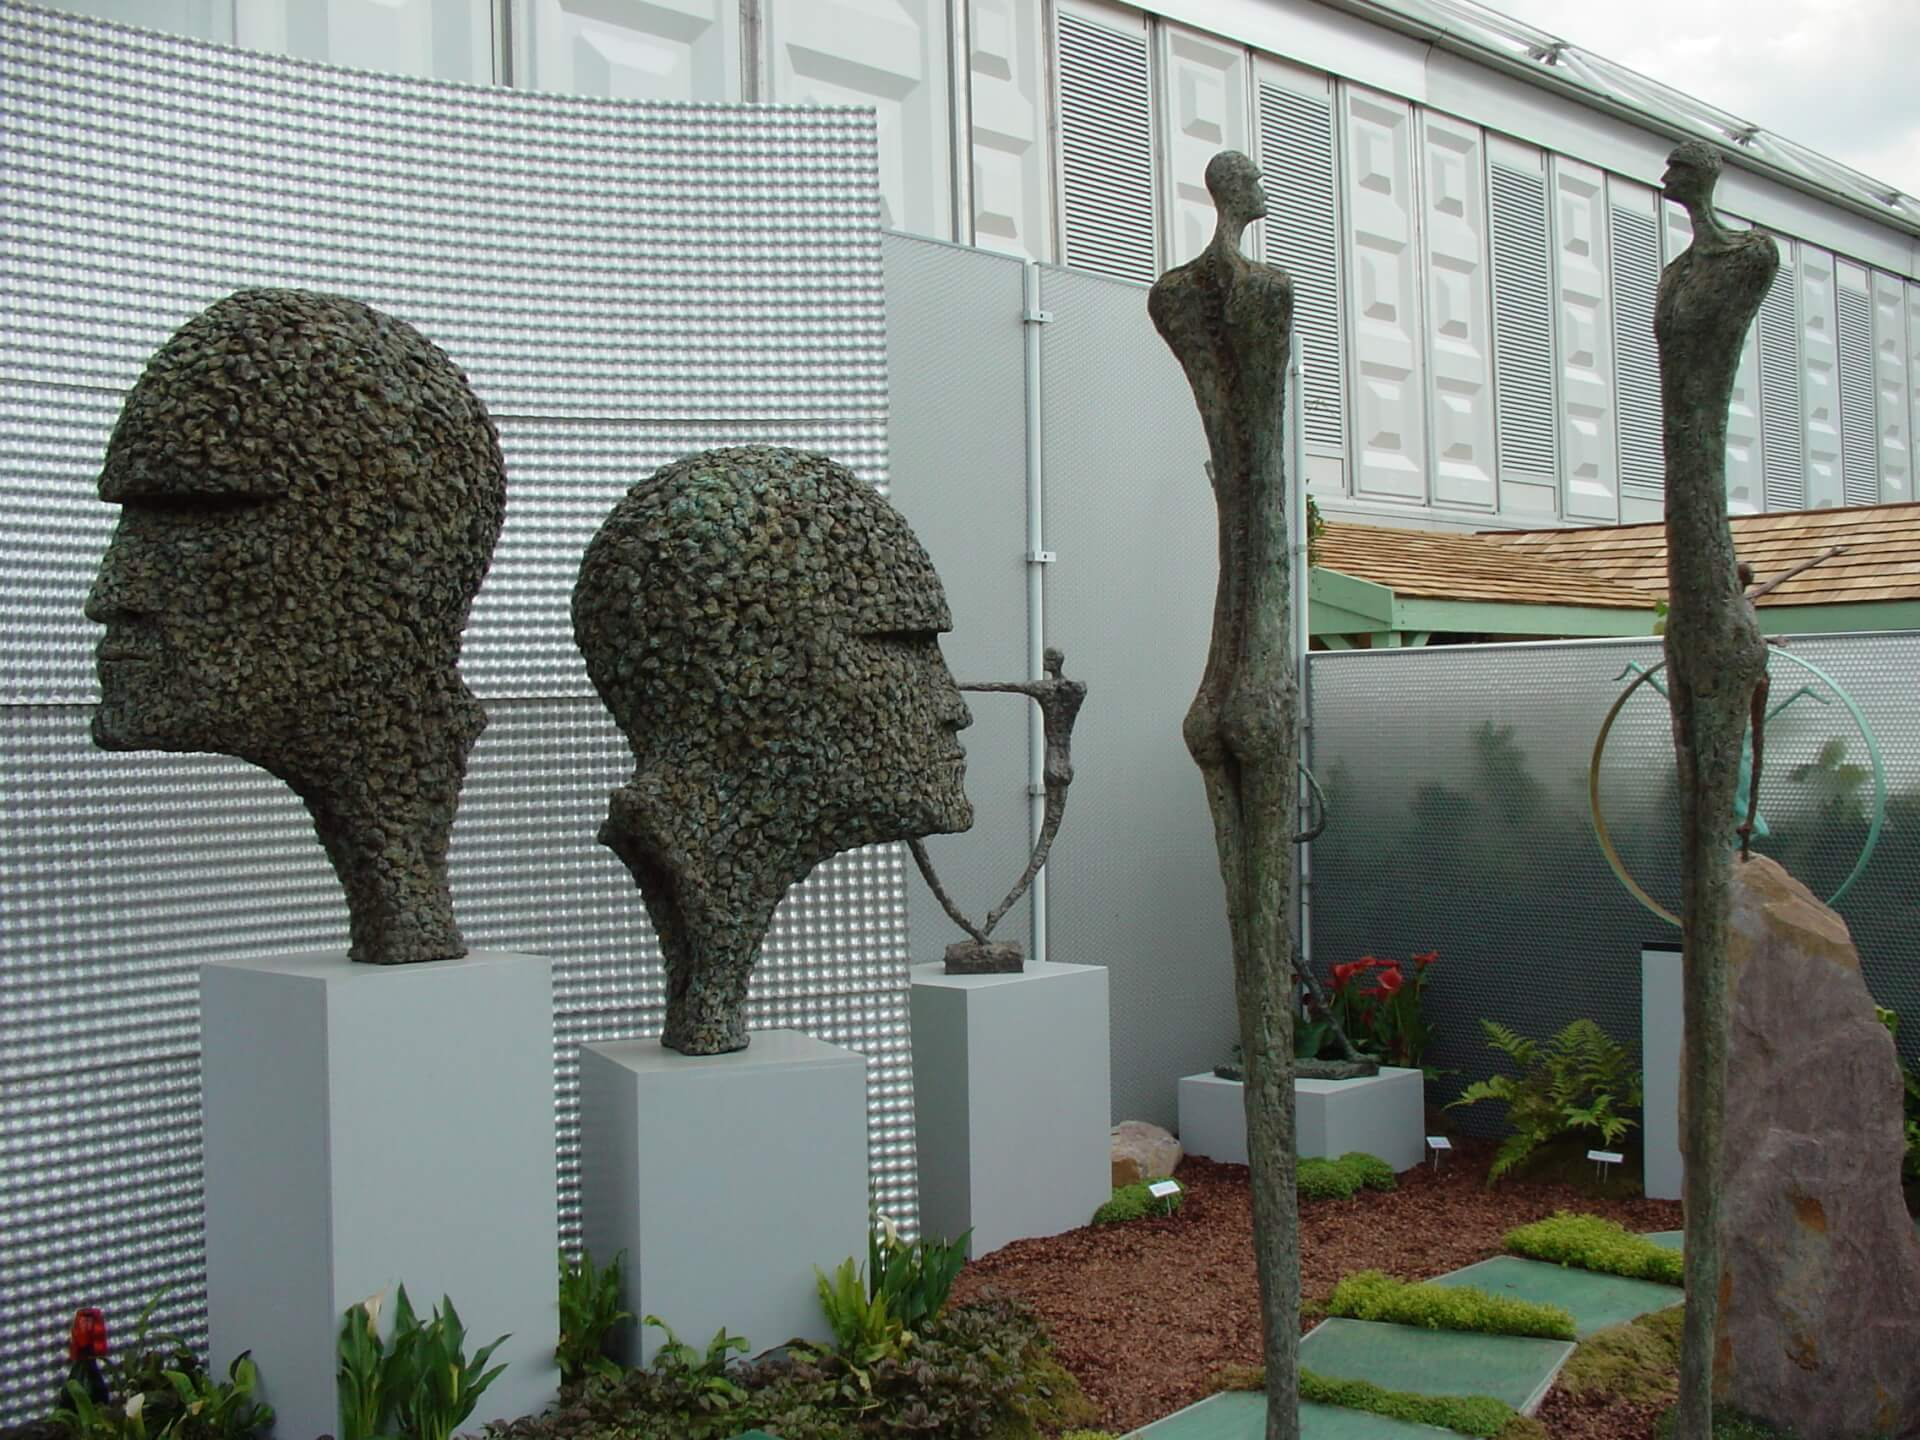 Architectural applications & bespoke furniture - Chelsea Flower Show 2007